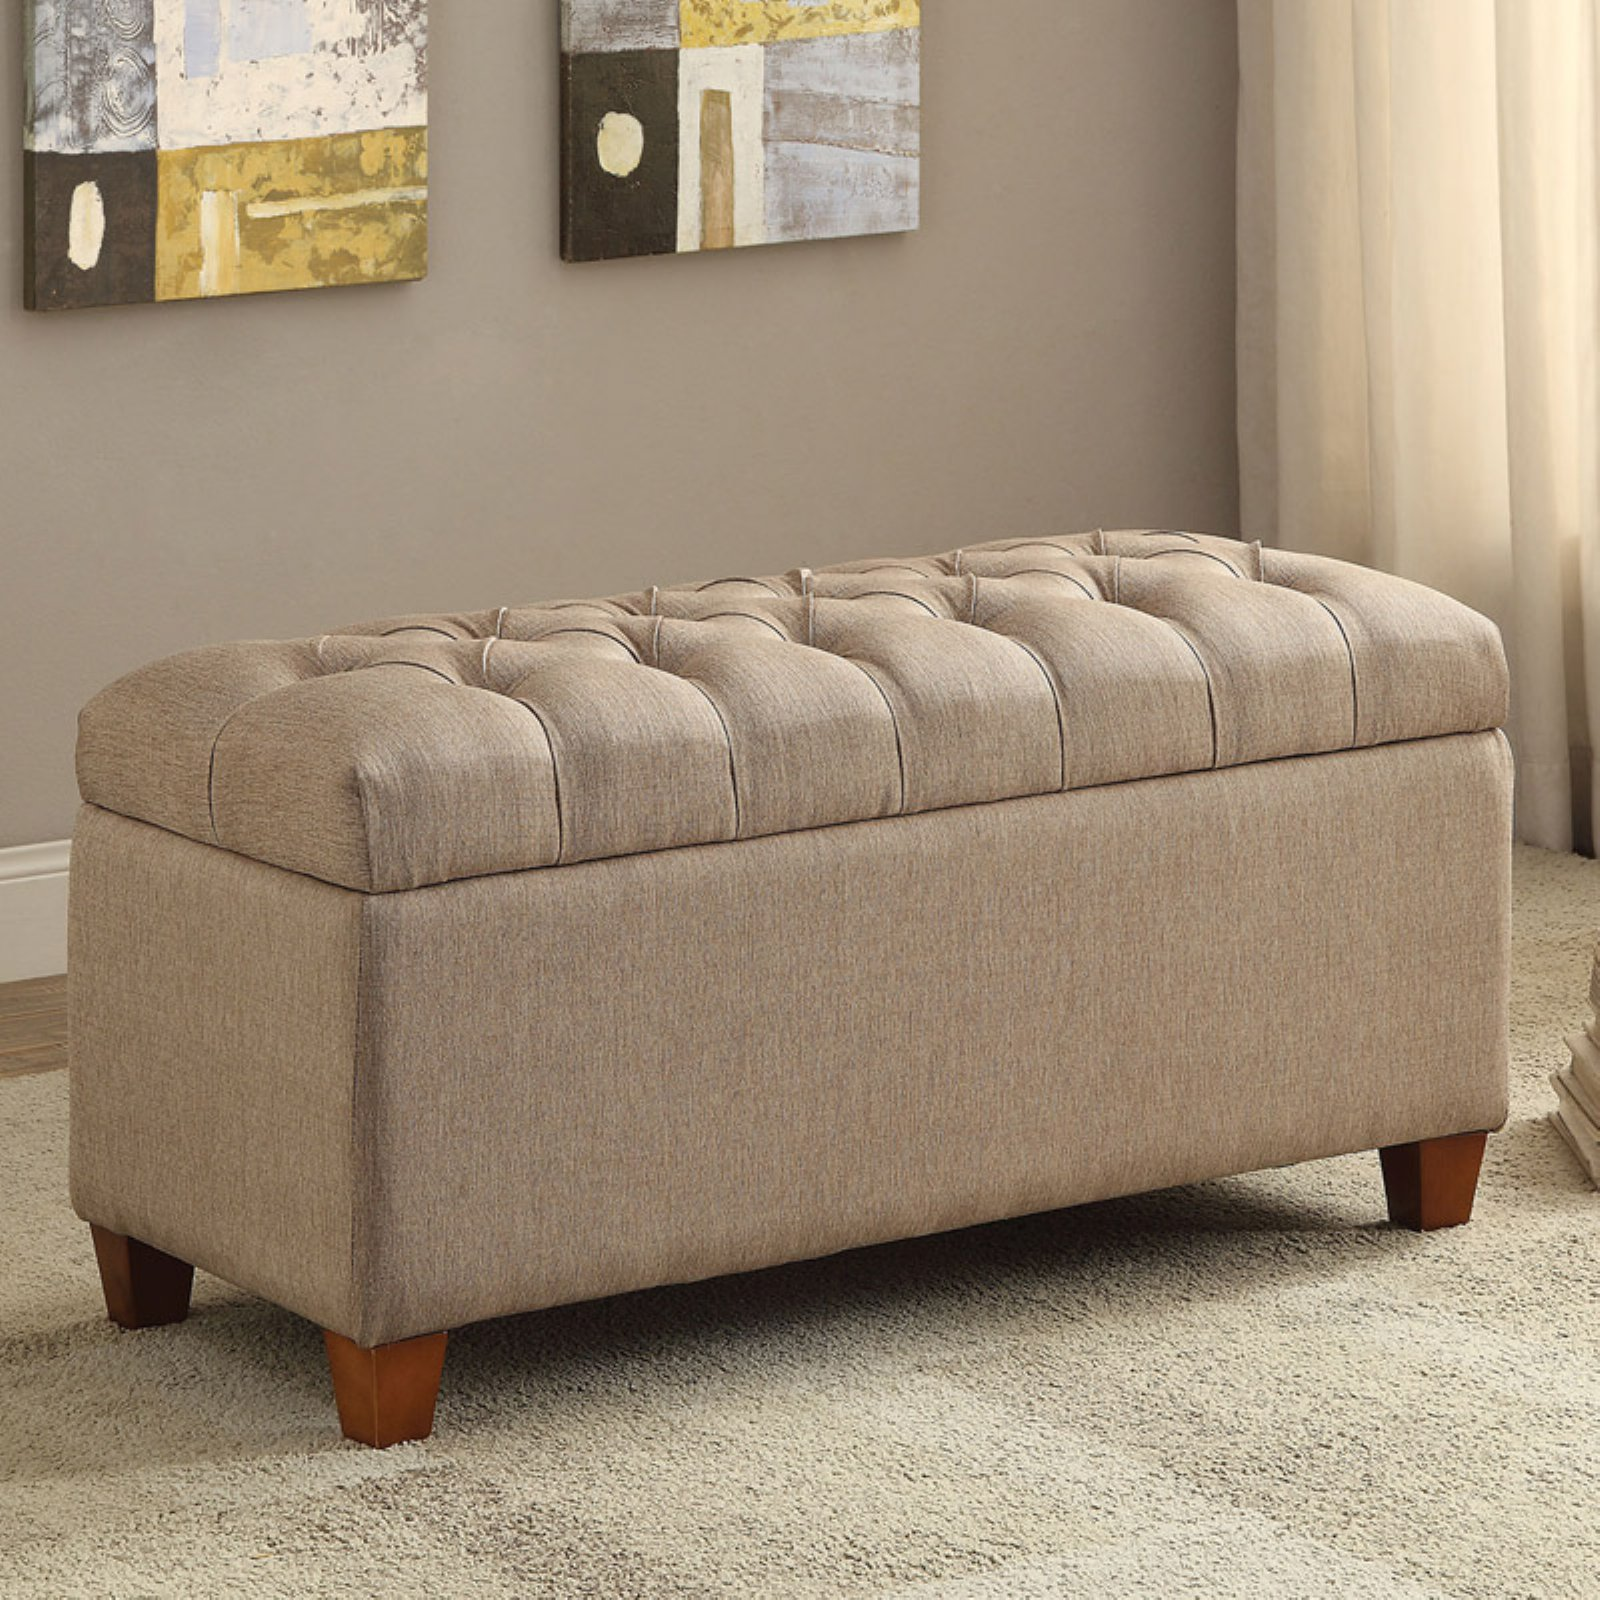 Coaster Ottoman/Bench, Taupe